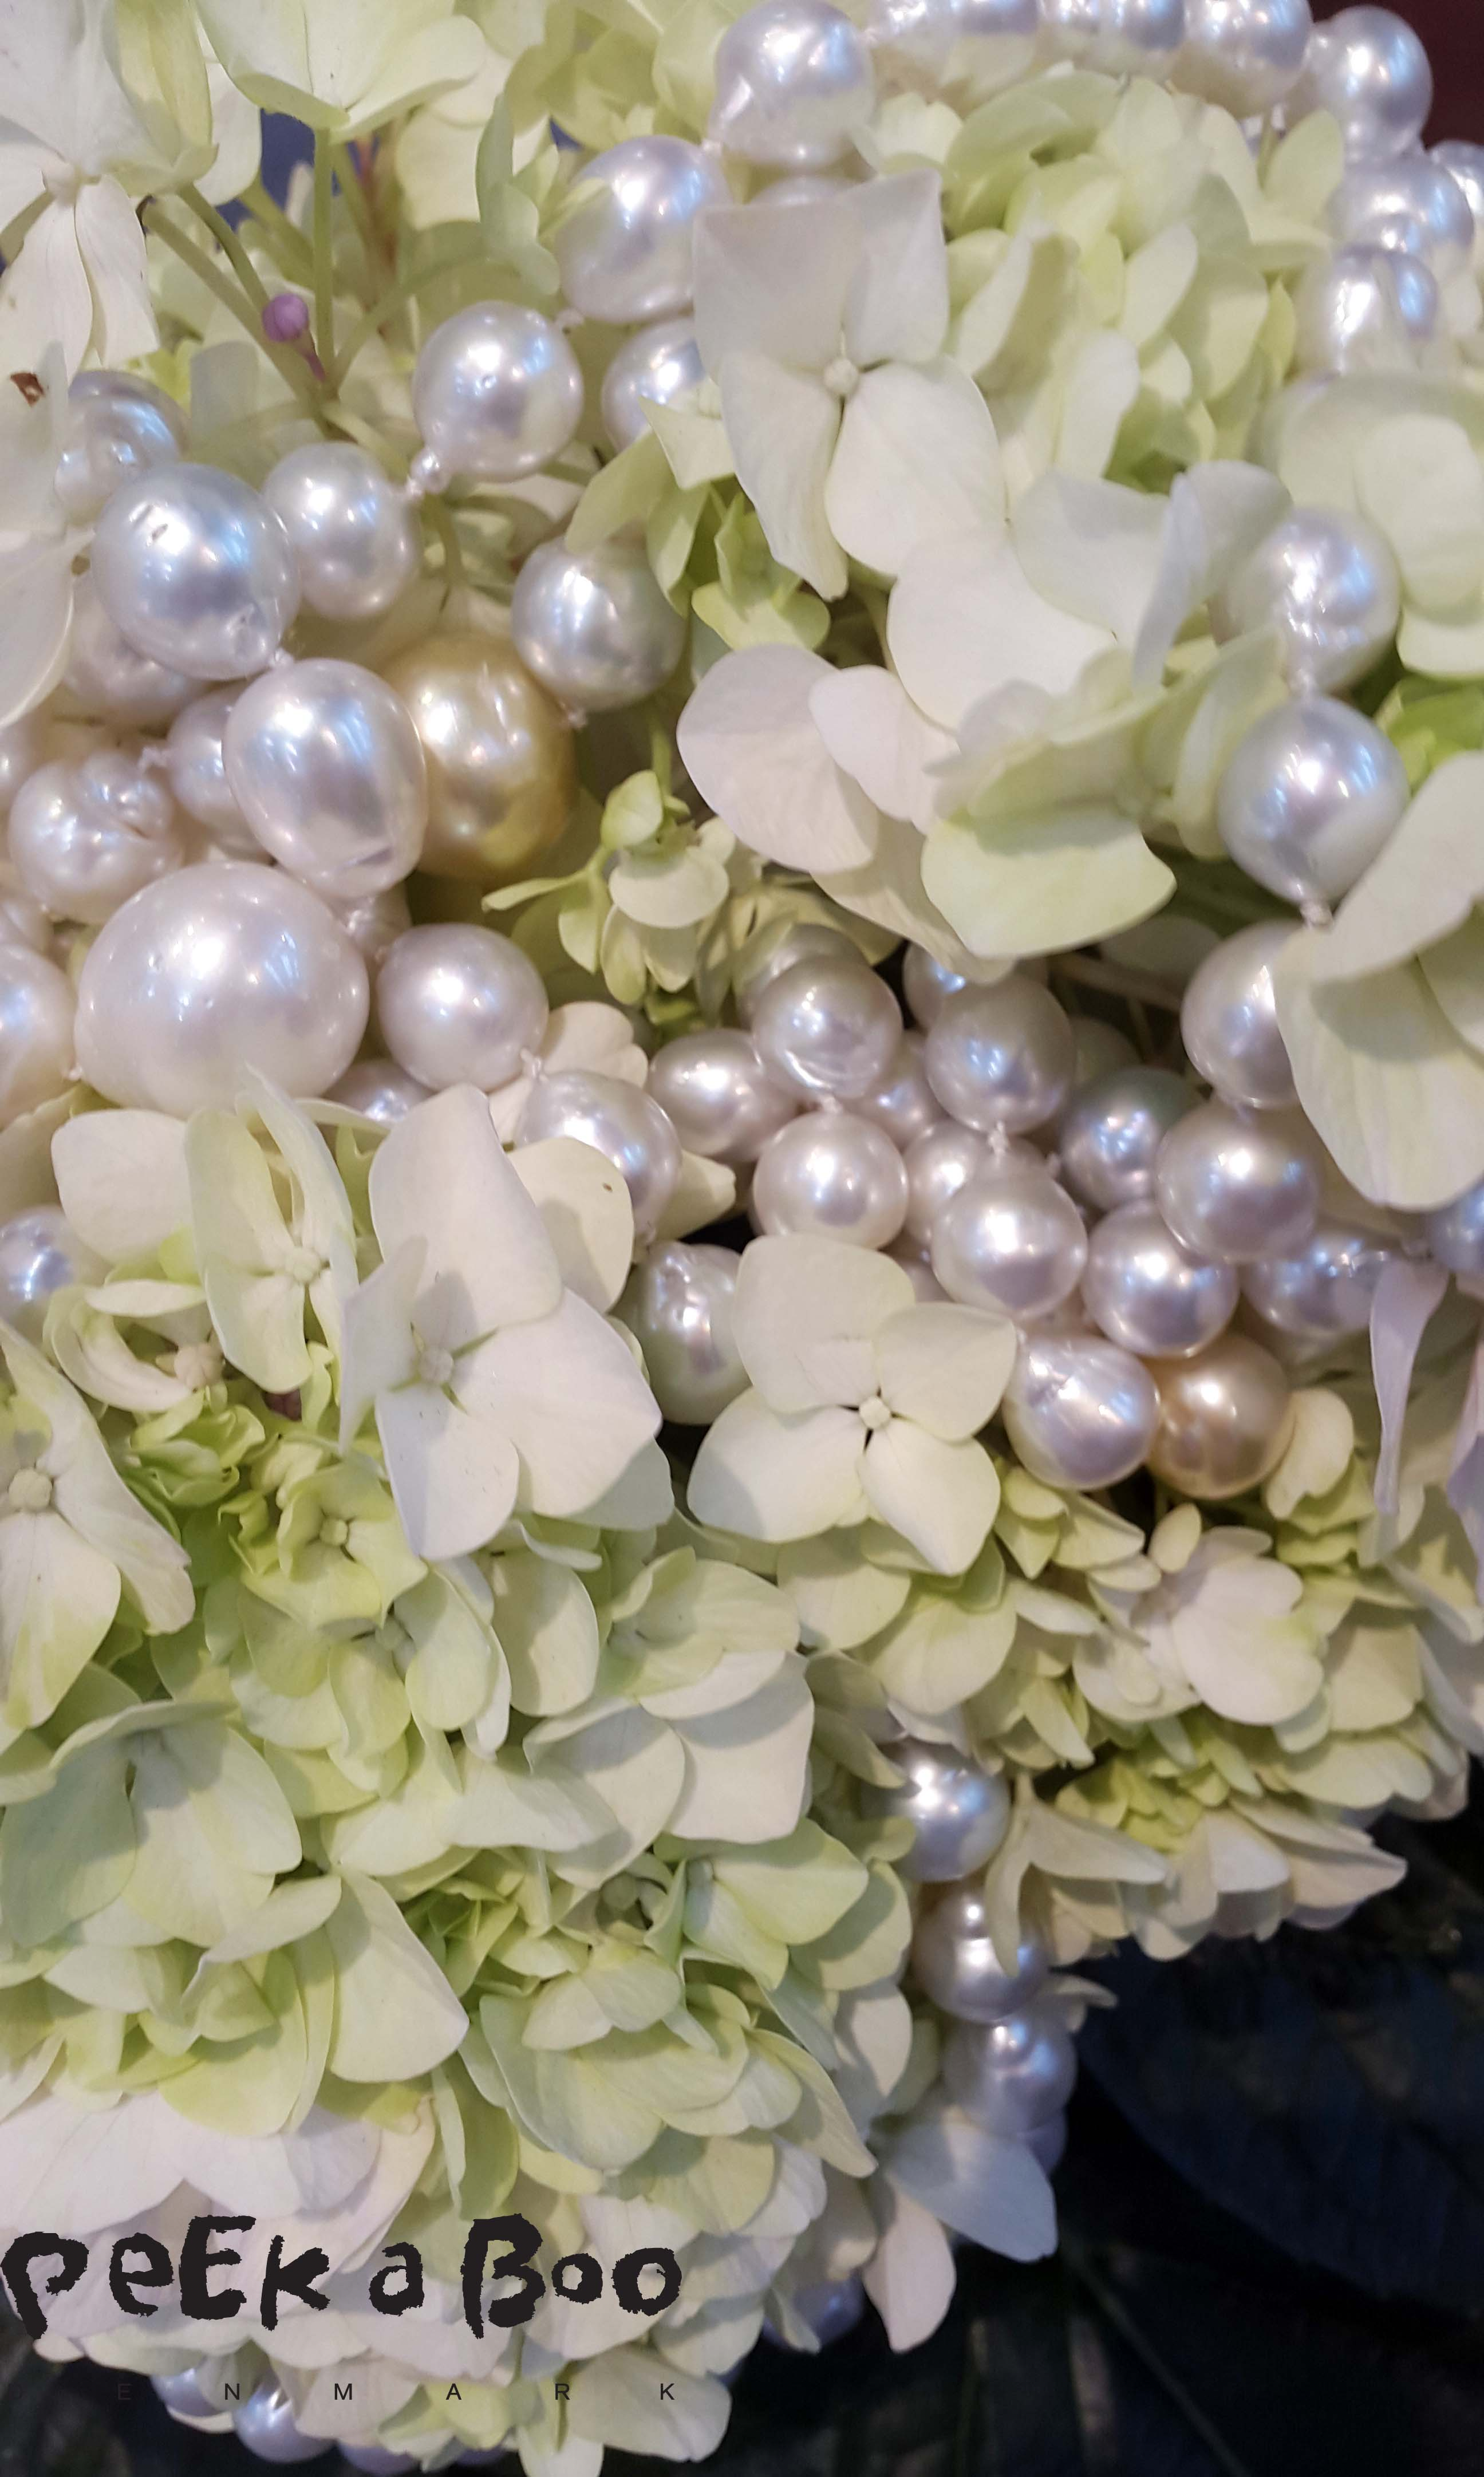 Beautiful Pearl necklace from Ruben Svart seen at the Jewelery and Watch show in Copenhagen.